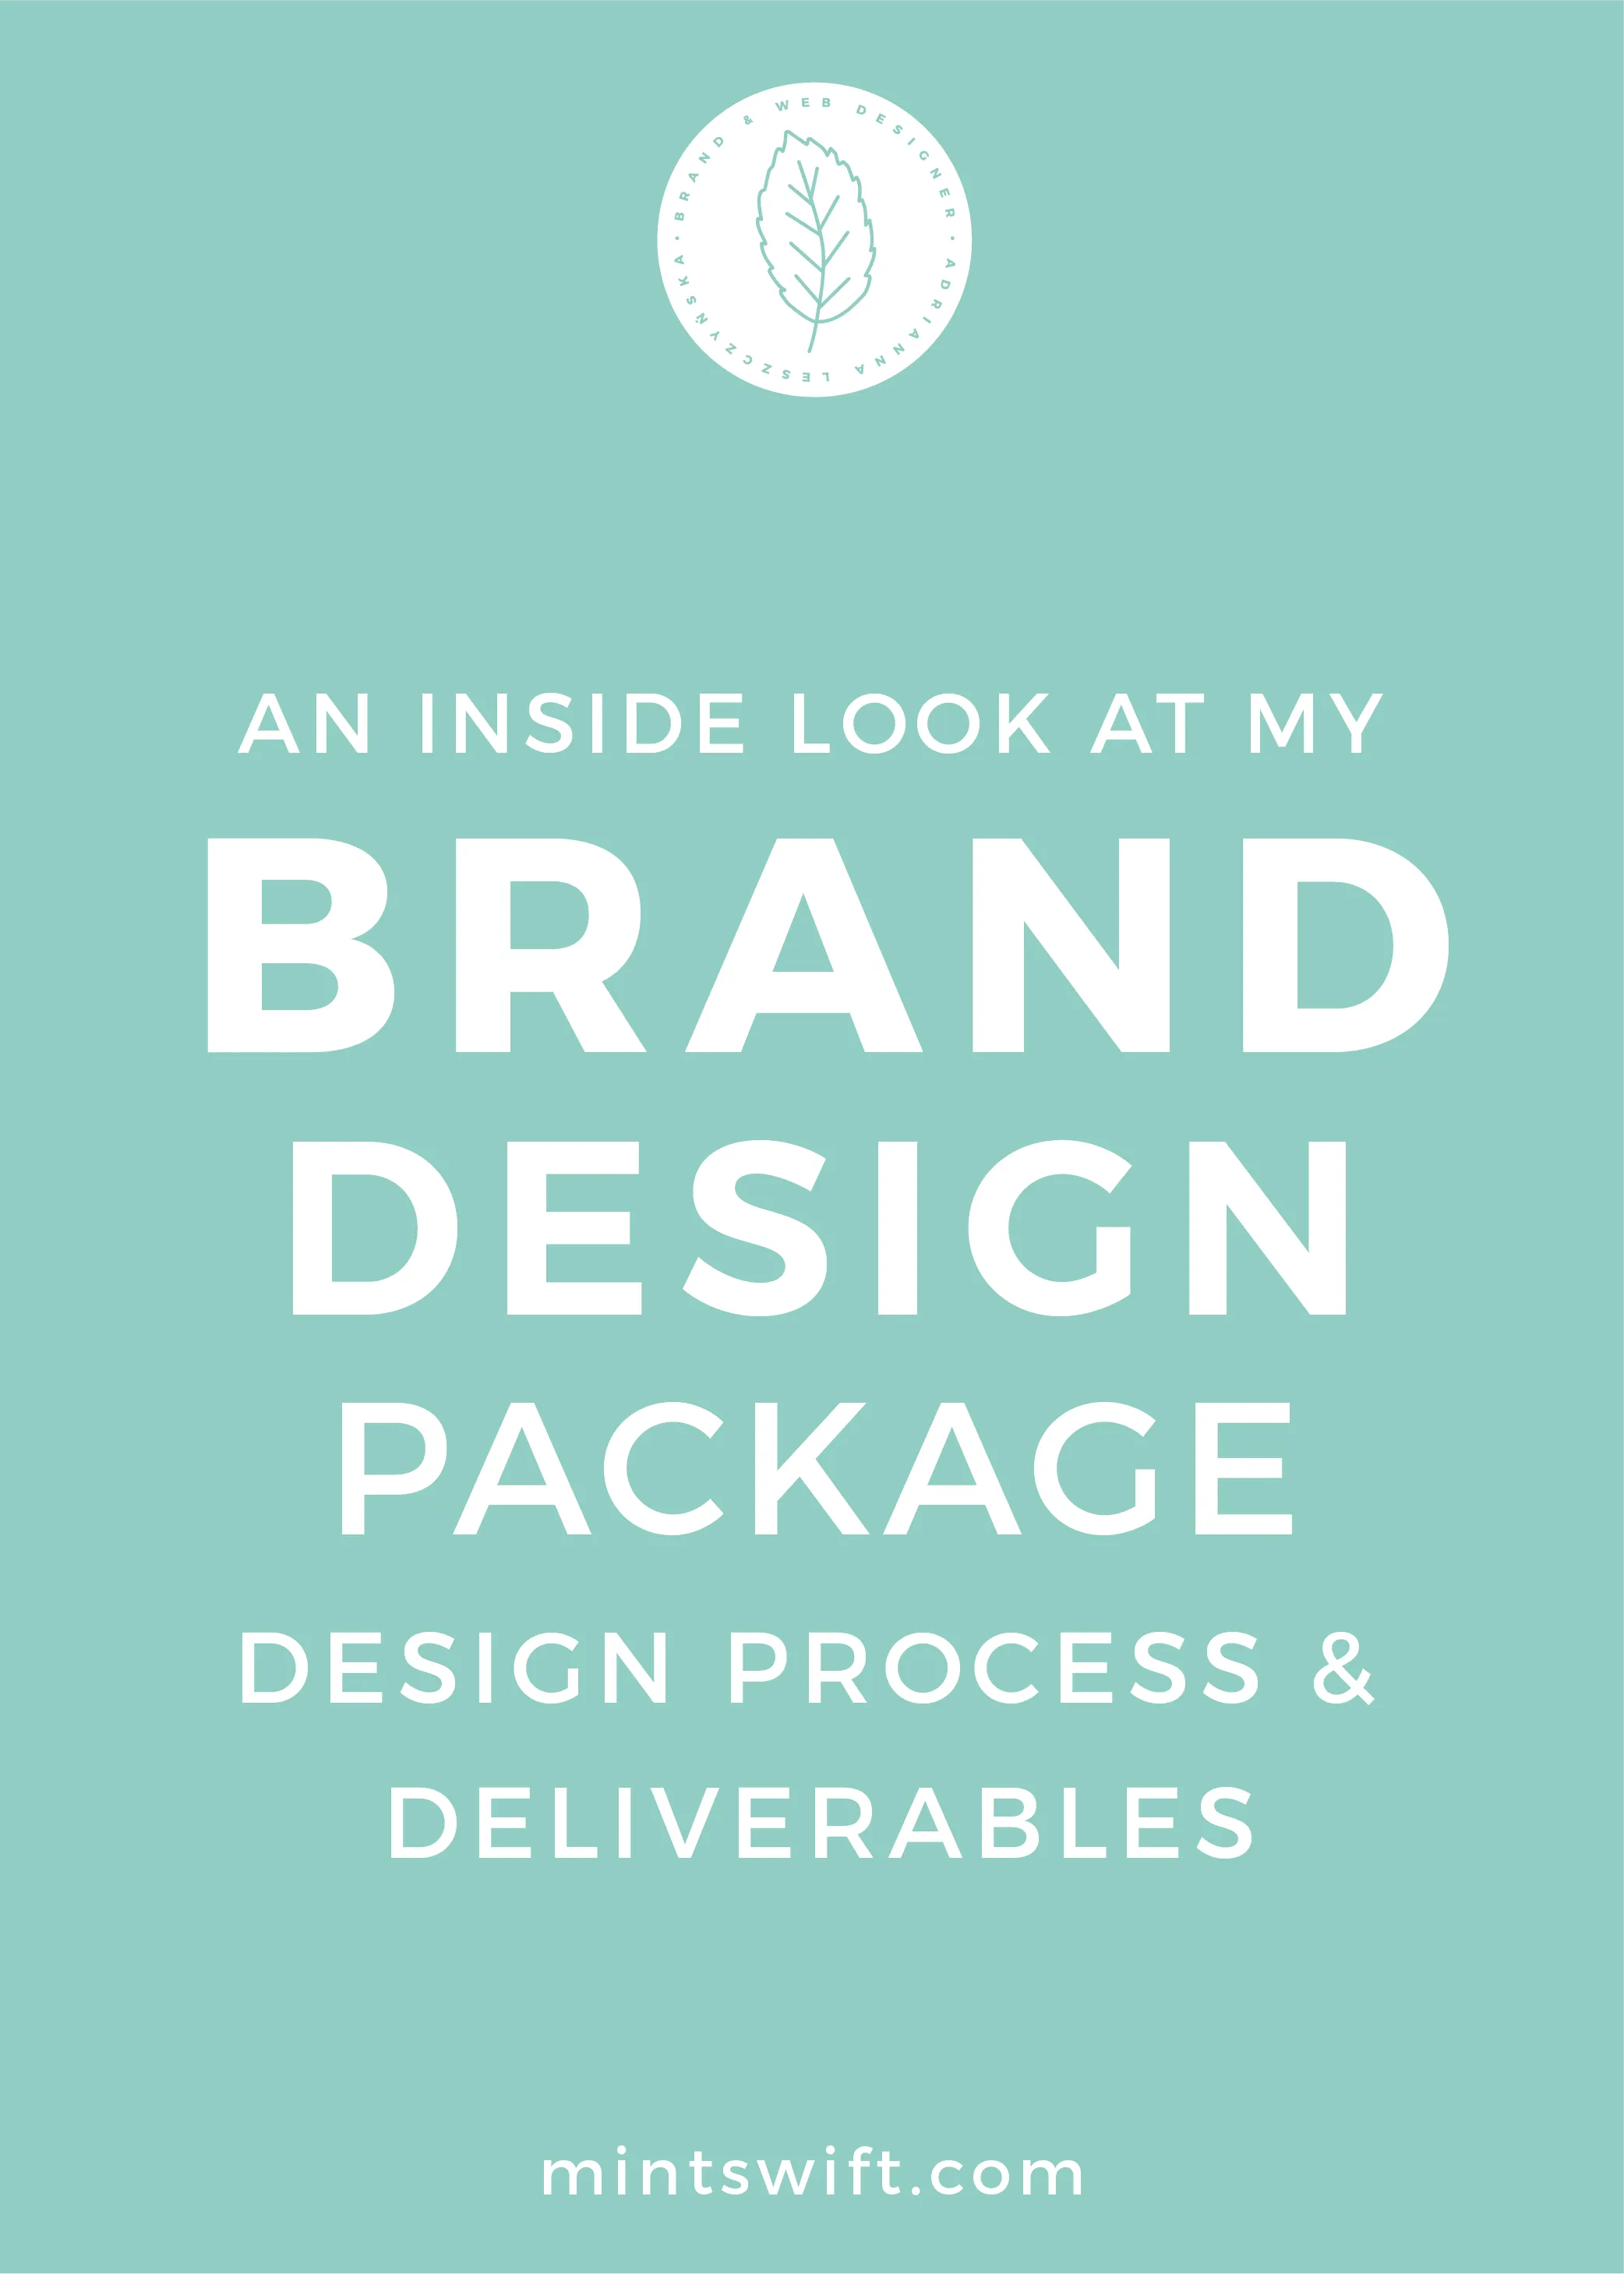 An Inside Look at My Brand Design Package Design Process & Deliverables - MintSwift